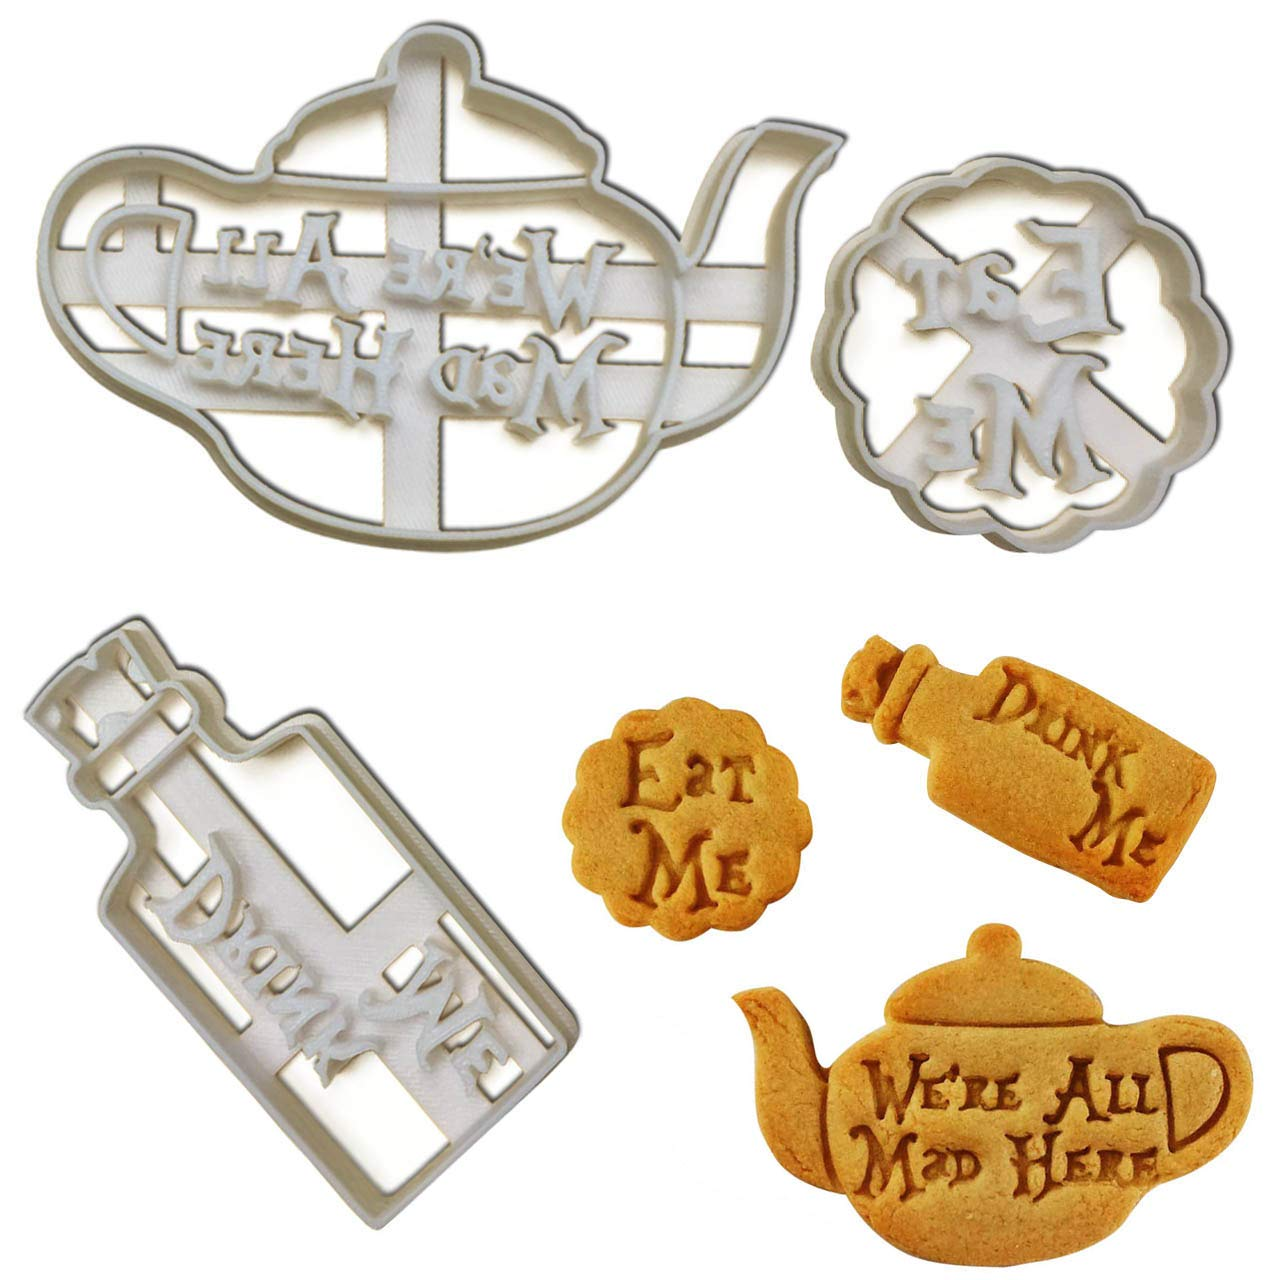 FULL SET of 3 cookie cutters inspired by''Alice's Adventures in Wonderland'' novel by Lewis Carroll, 3 pcs (Eat Me, Drink Me potion, and We're All Mad Here teapot)